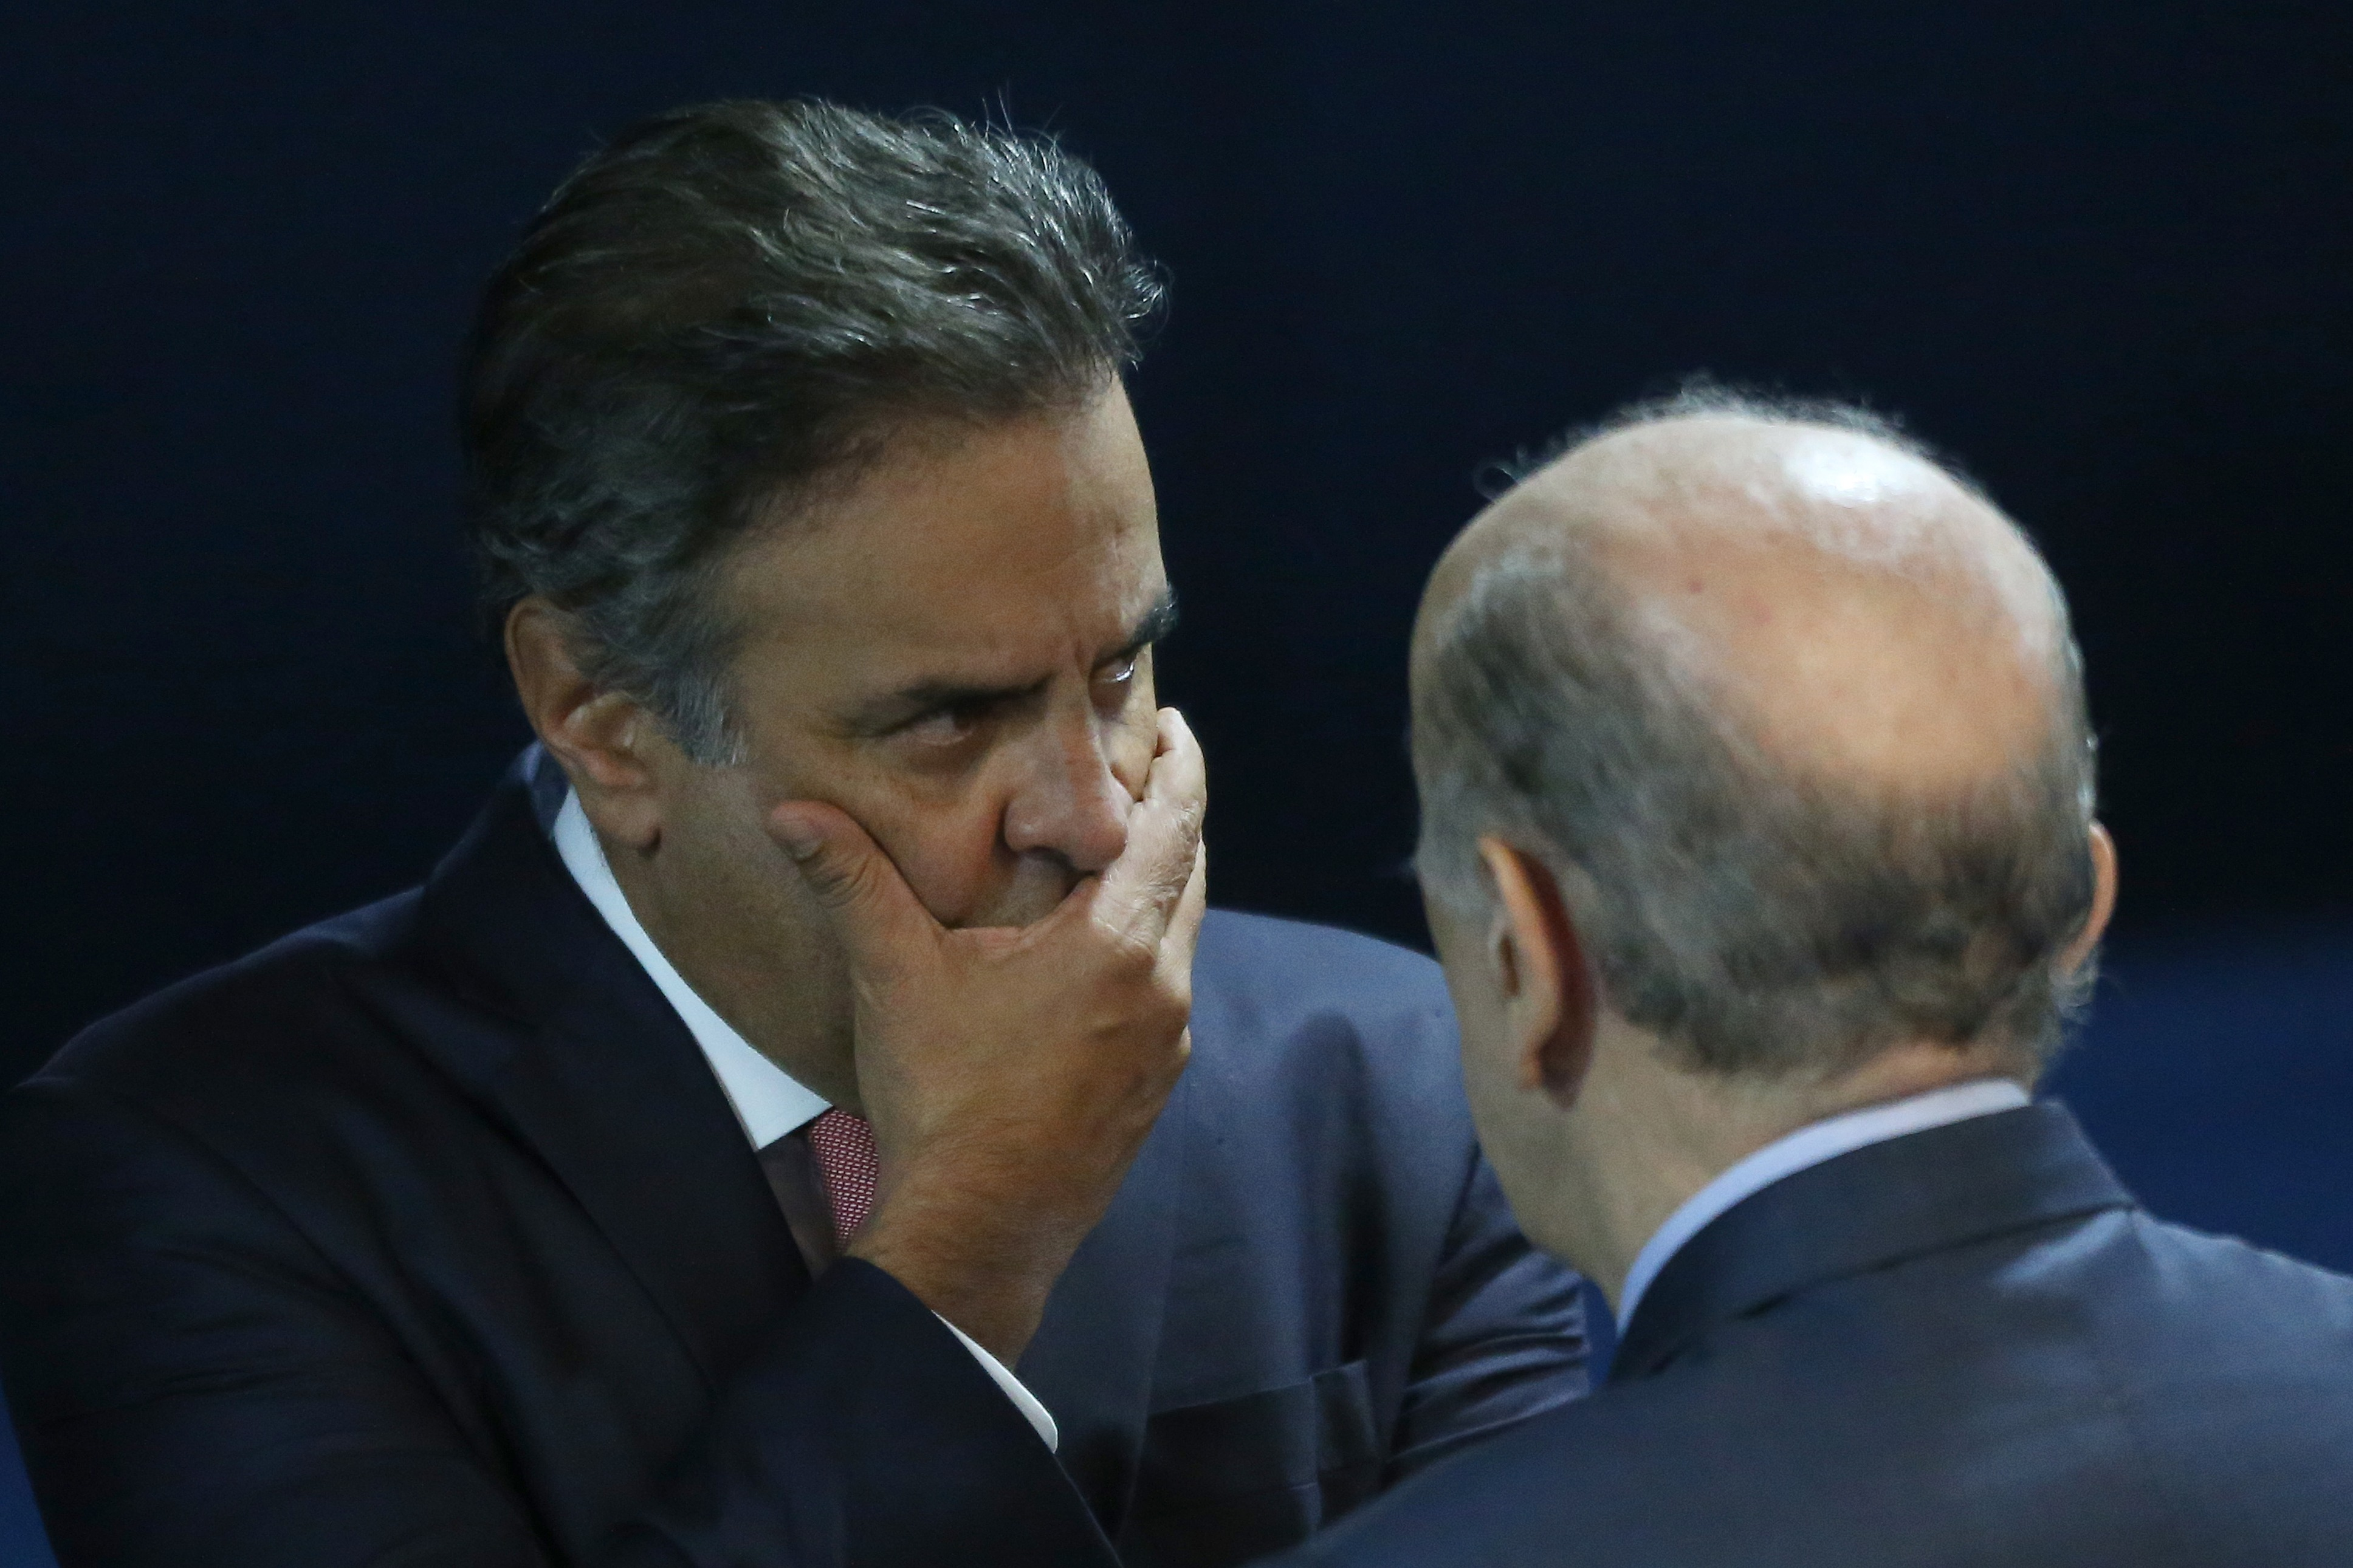 Aécio Neves é afastado do mandato de senador